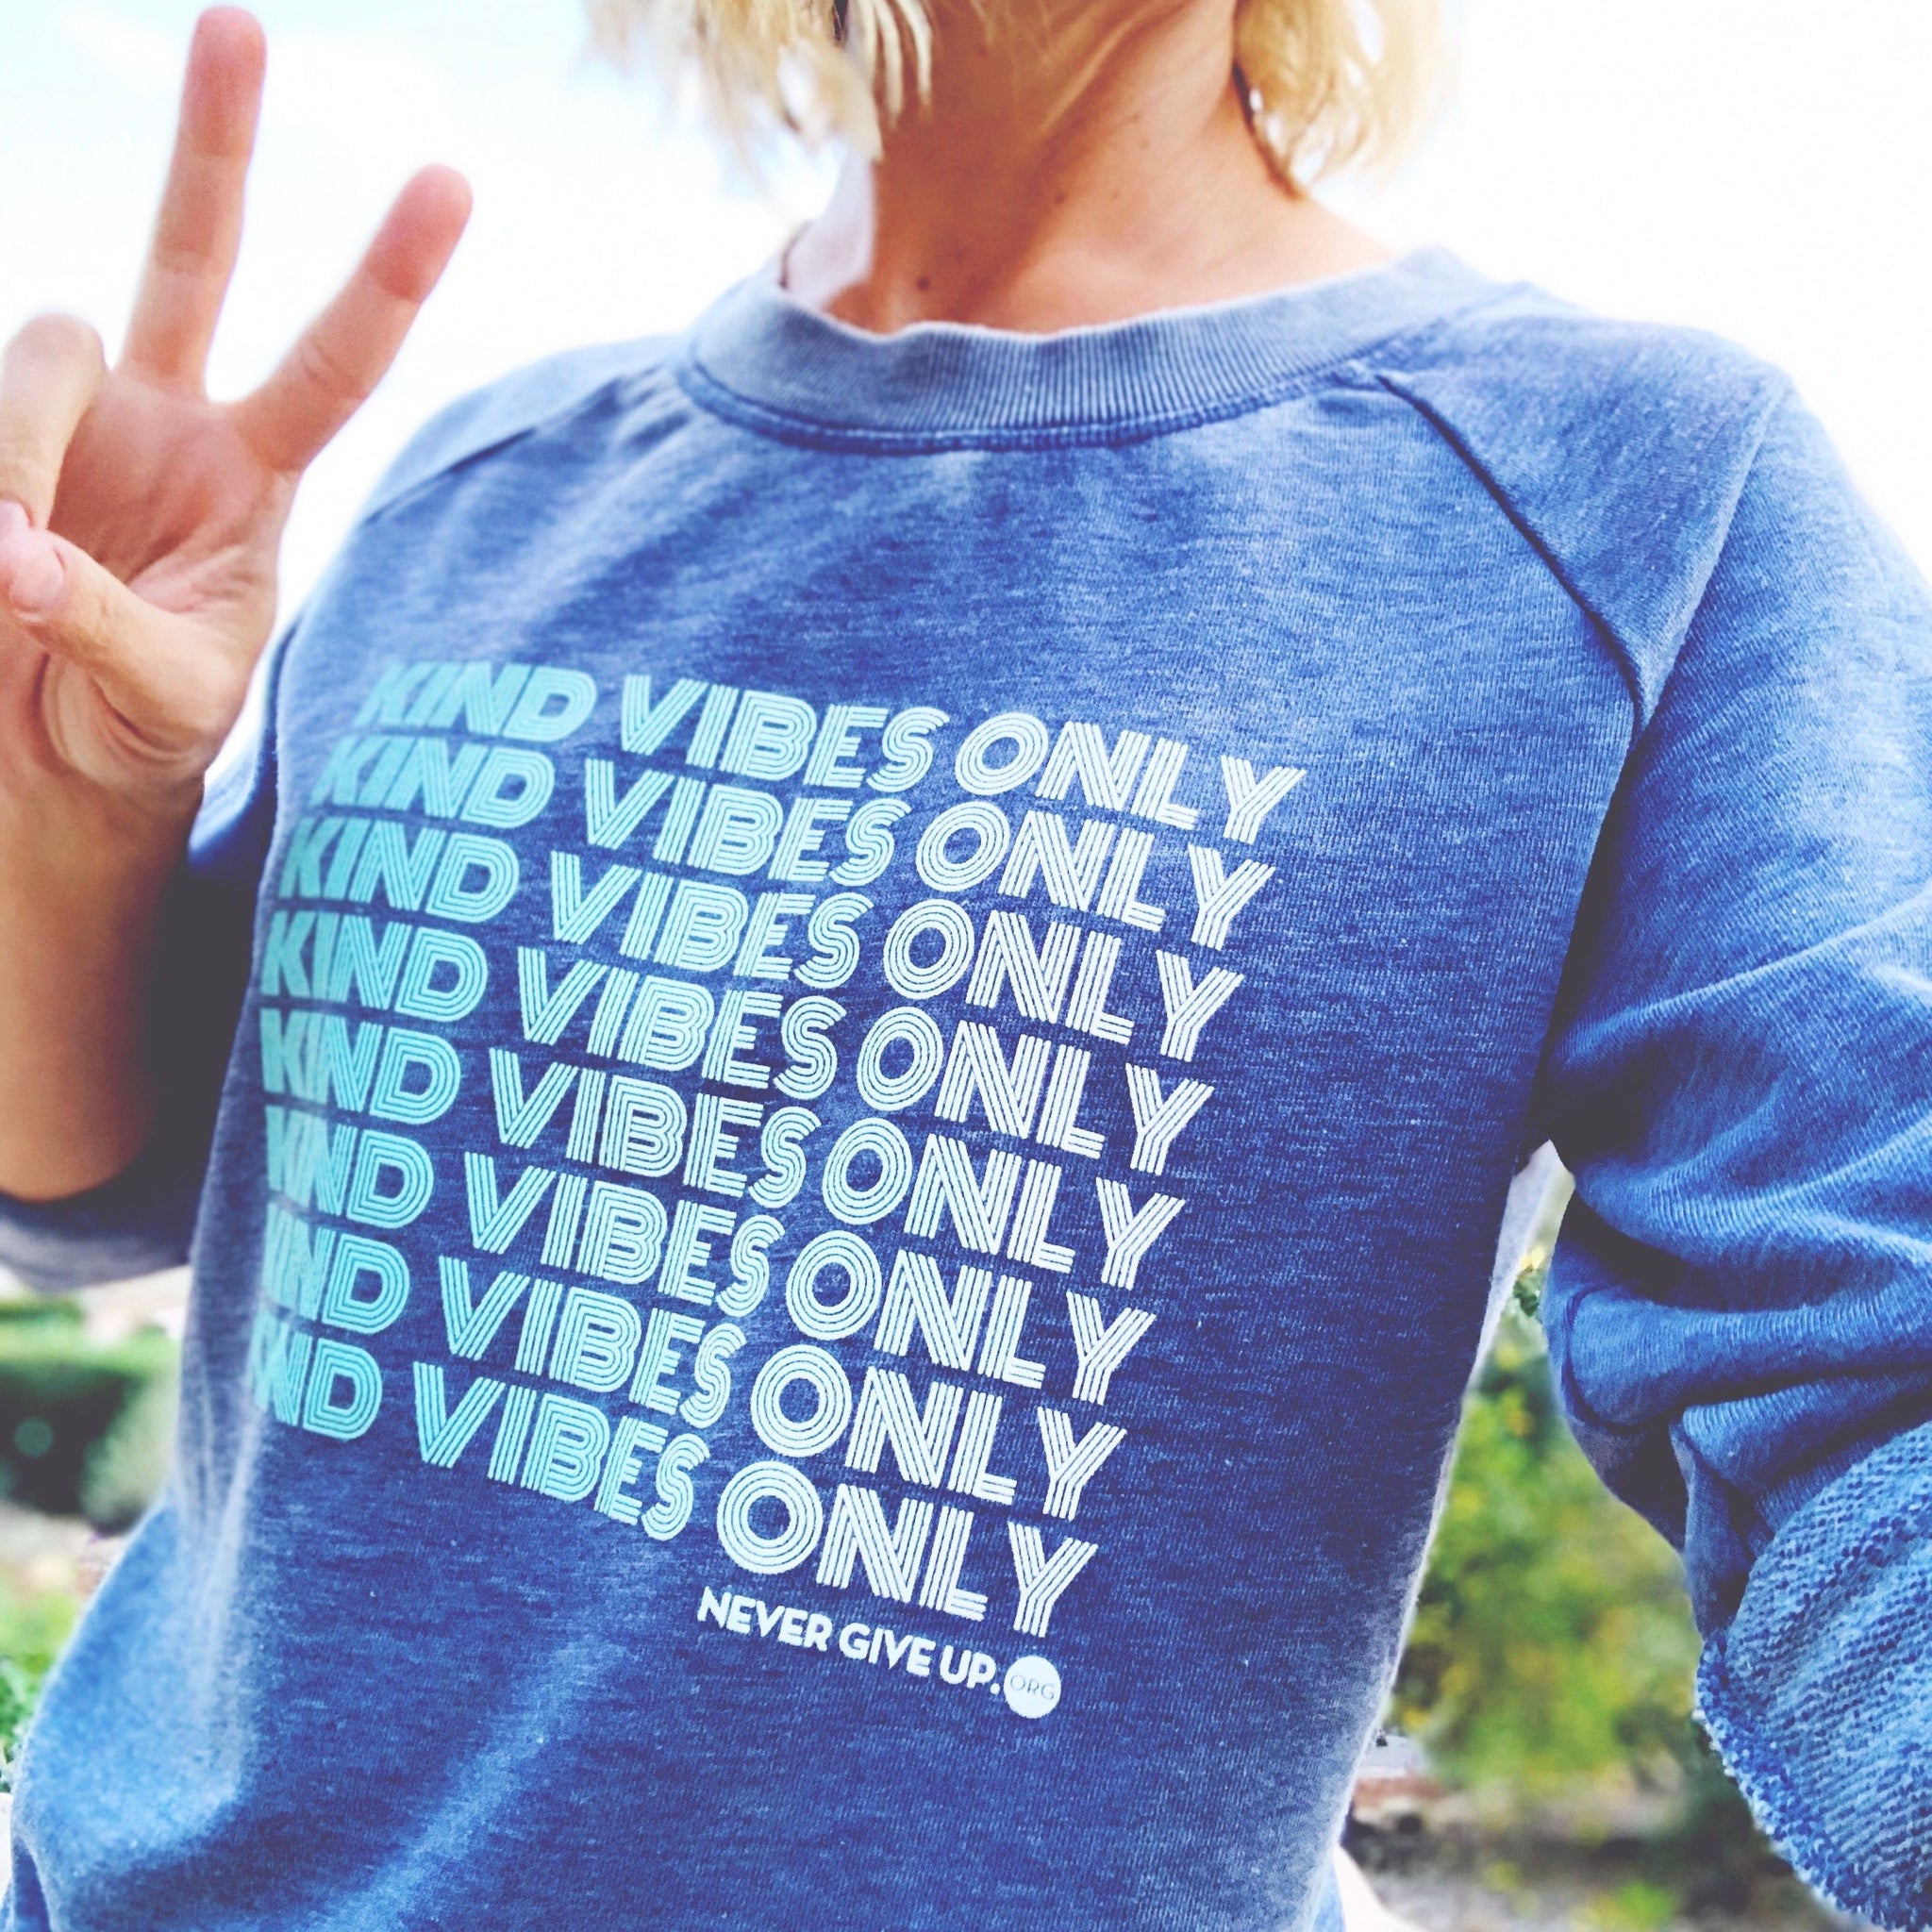 KIND VIBES ONLY FRENCH TERRY SWEATSHIRT